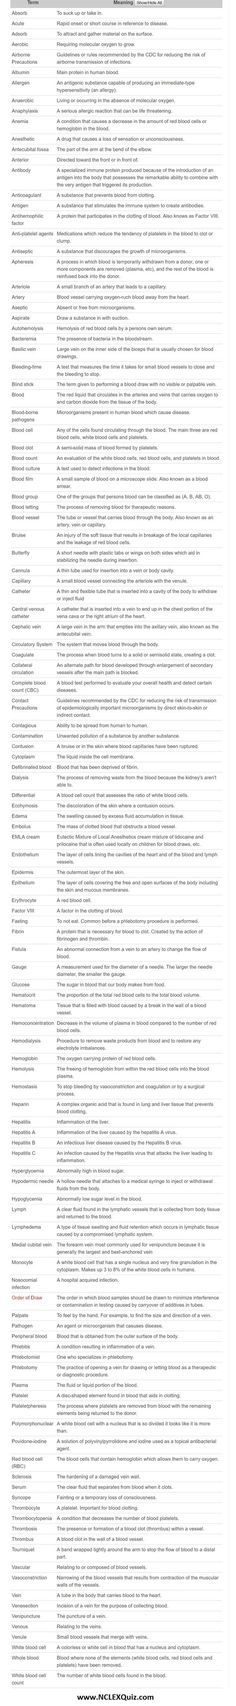 Phlebotomy Terminology List Below is a list of the most commonly used phlebotomy terminology and their definitions in alphabetical order. And, while it's a great reference guide for students and medical professionals alike, it's a lot more than just that!